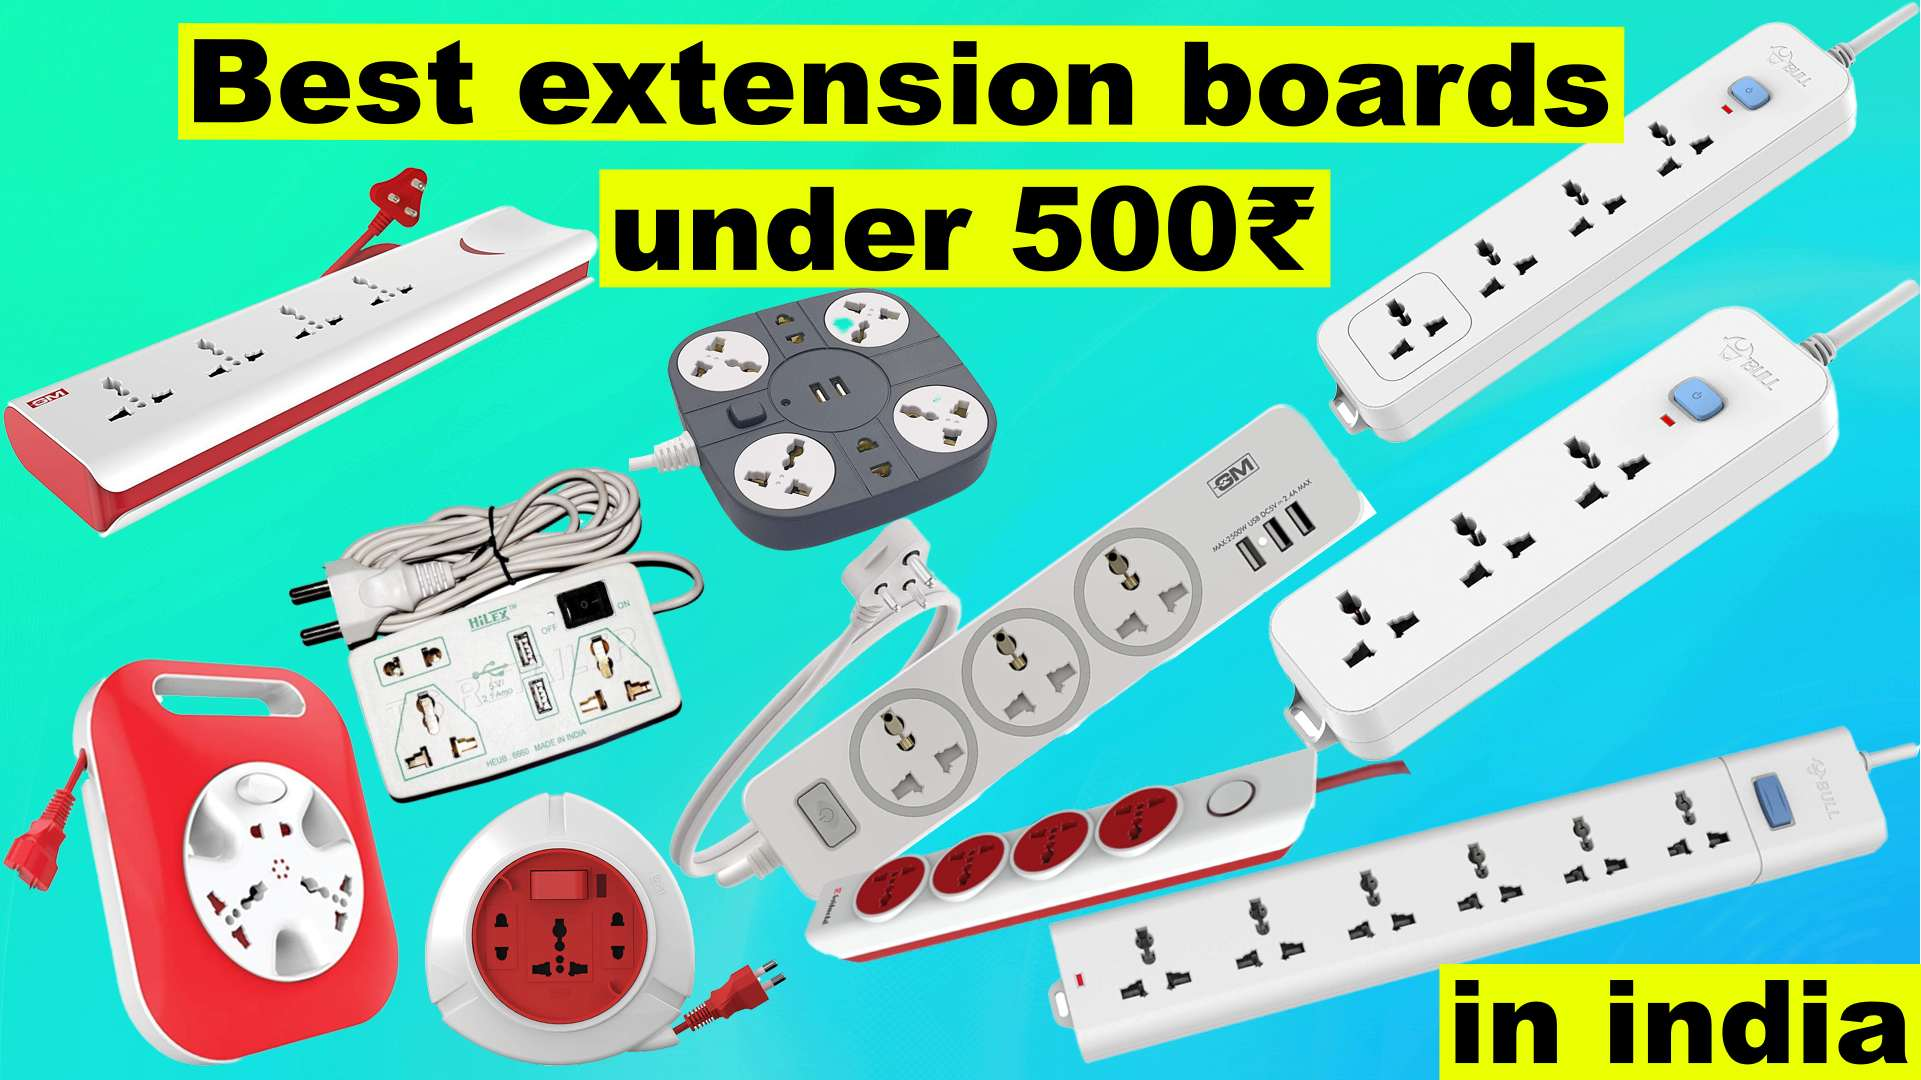 best extension boards under 500 Rs in India